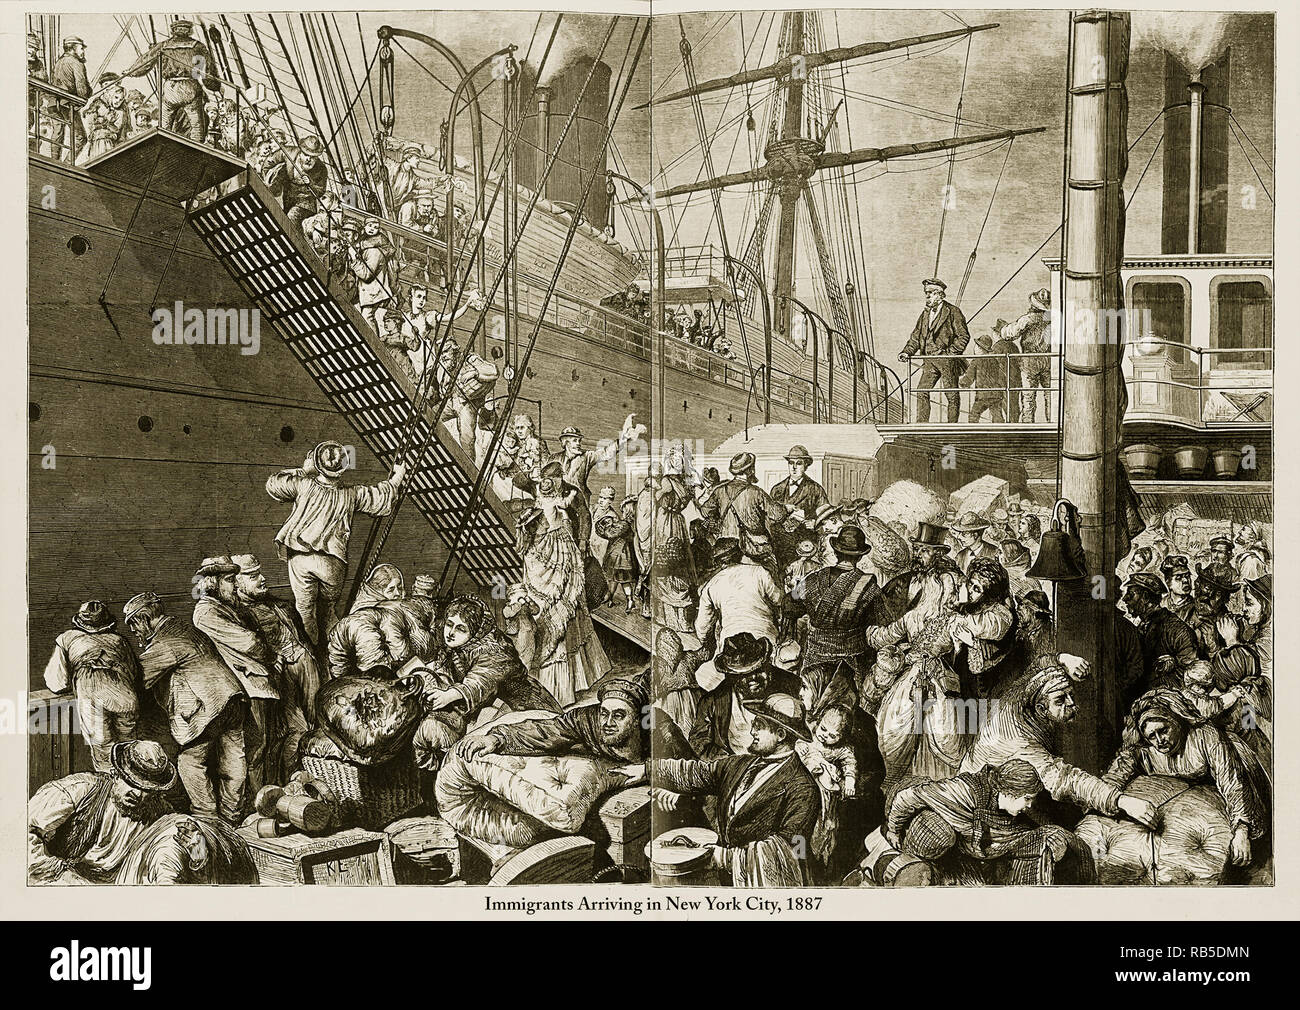 Immigrants Arriving In New York City Engraving Stock